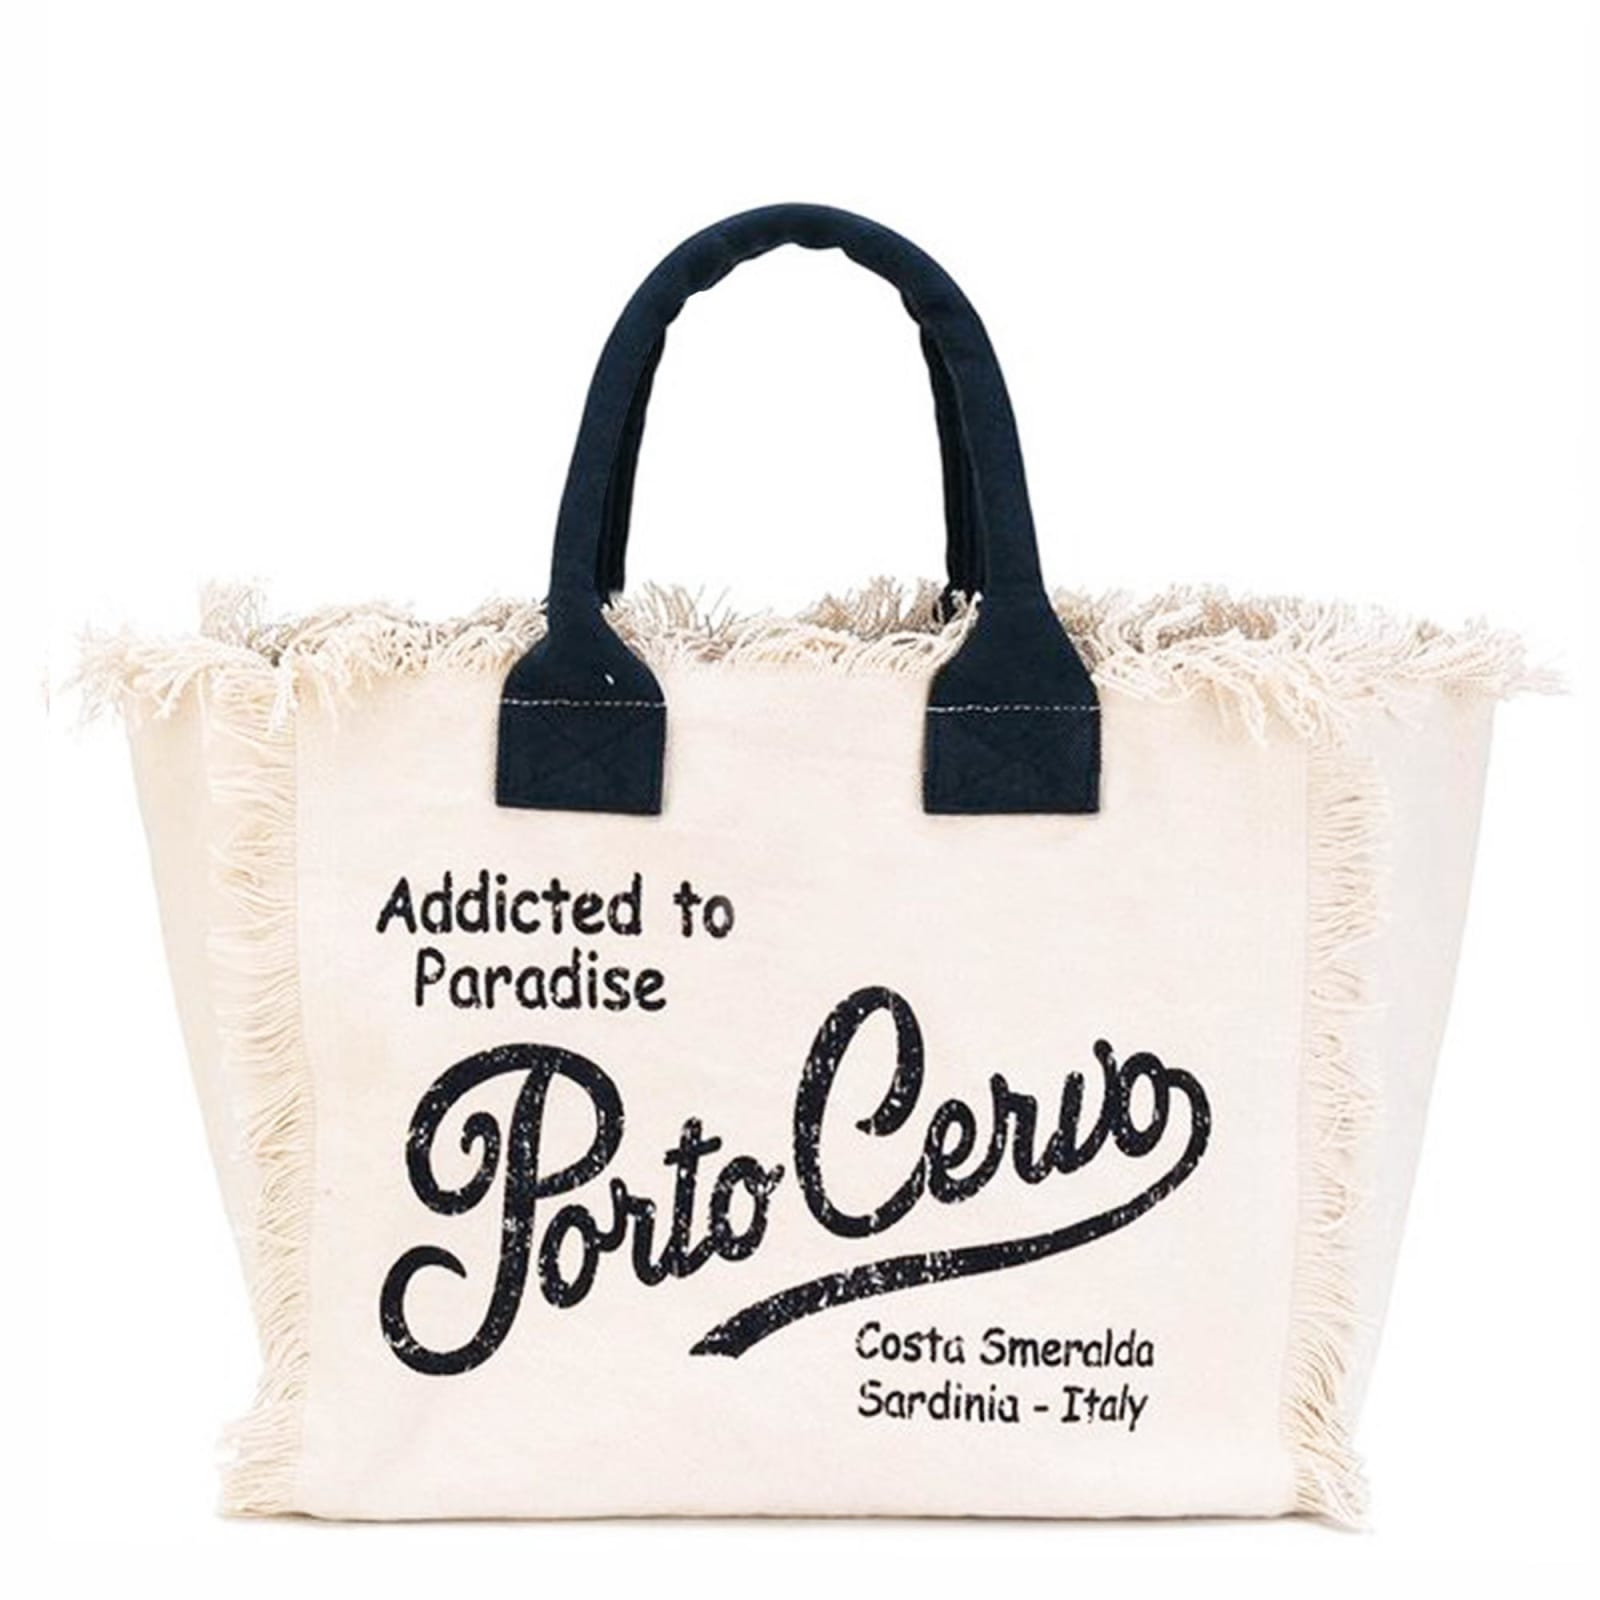 Natural Canvas Beach Bag - Porto Cervo Front Graphic